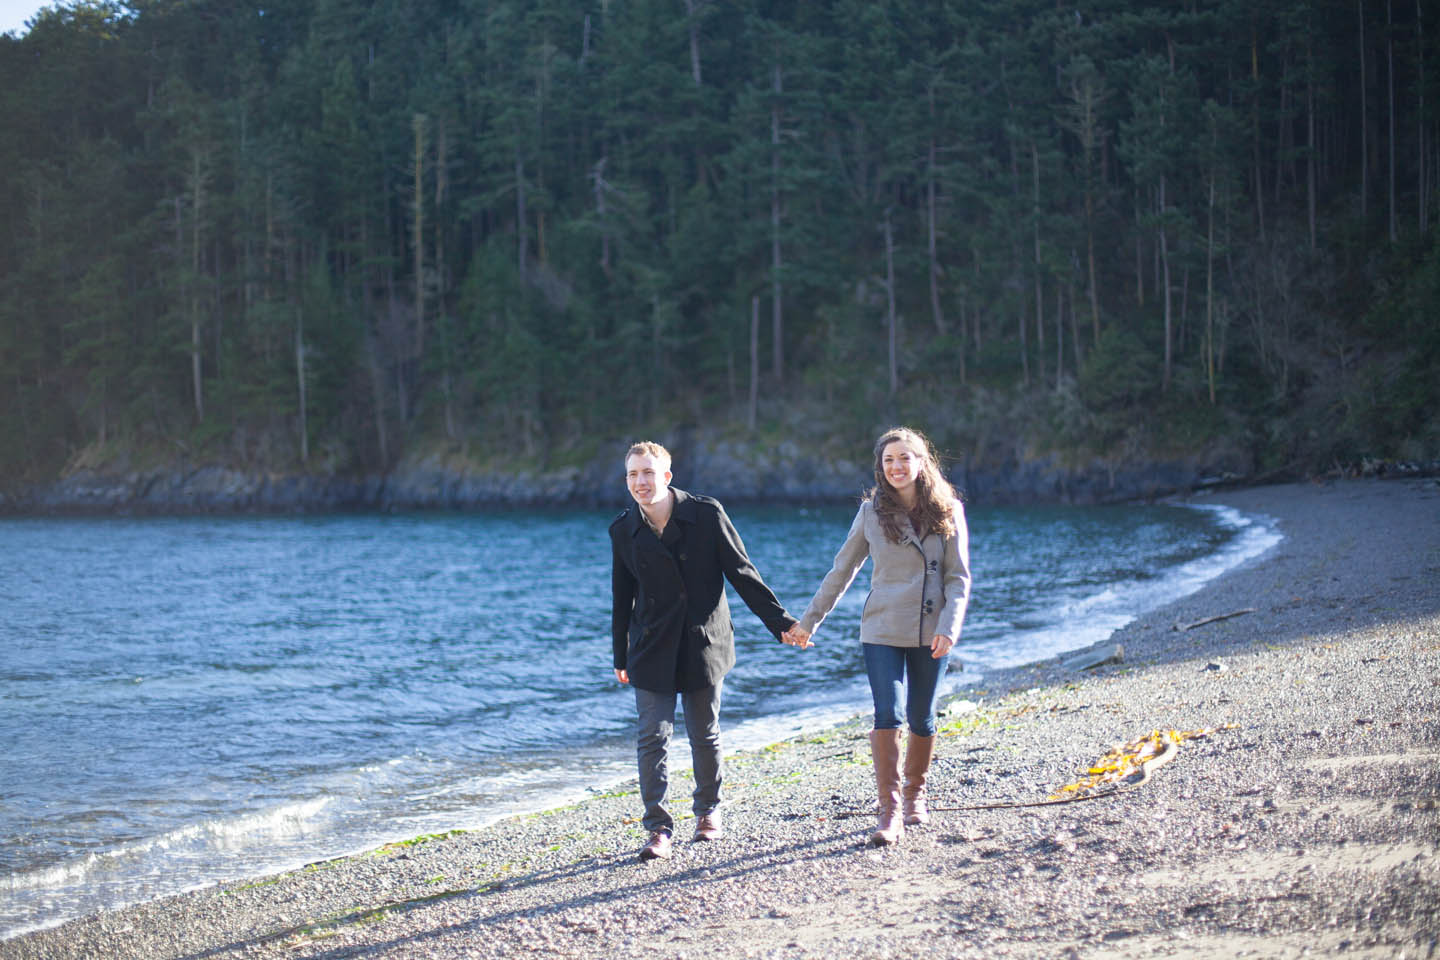 krysta-sean-engagement-san-juan-islands-084